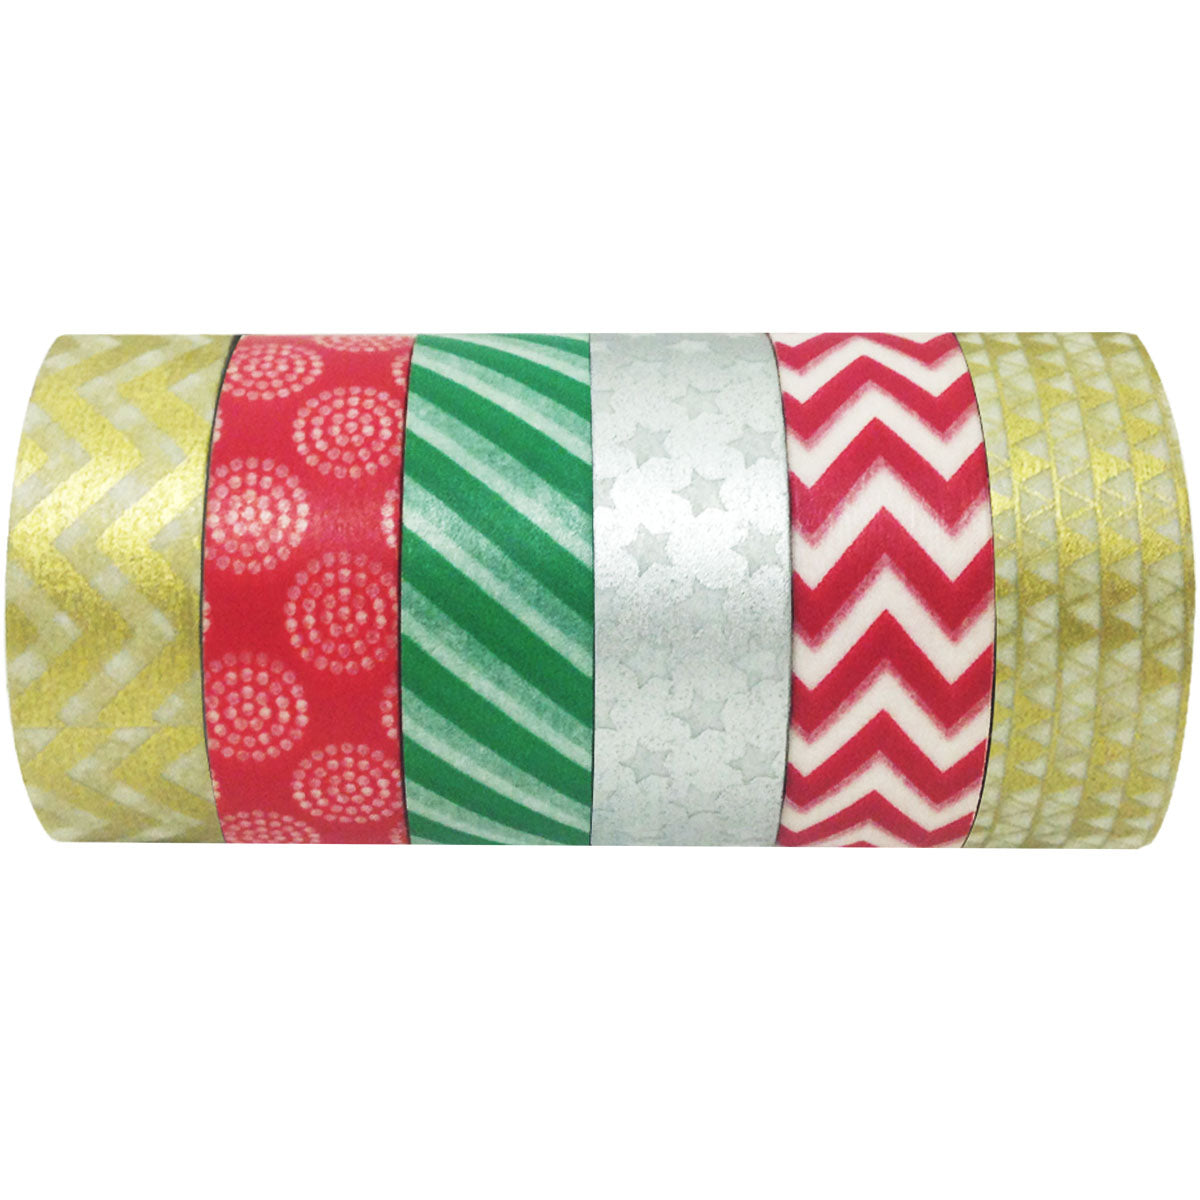 Wrapables Festive Holiday Japanese Masking Tape Washi Tape, Set of 6